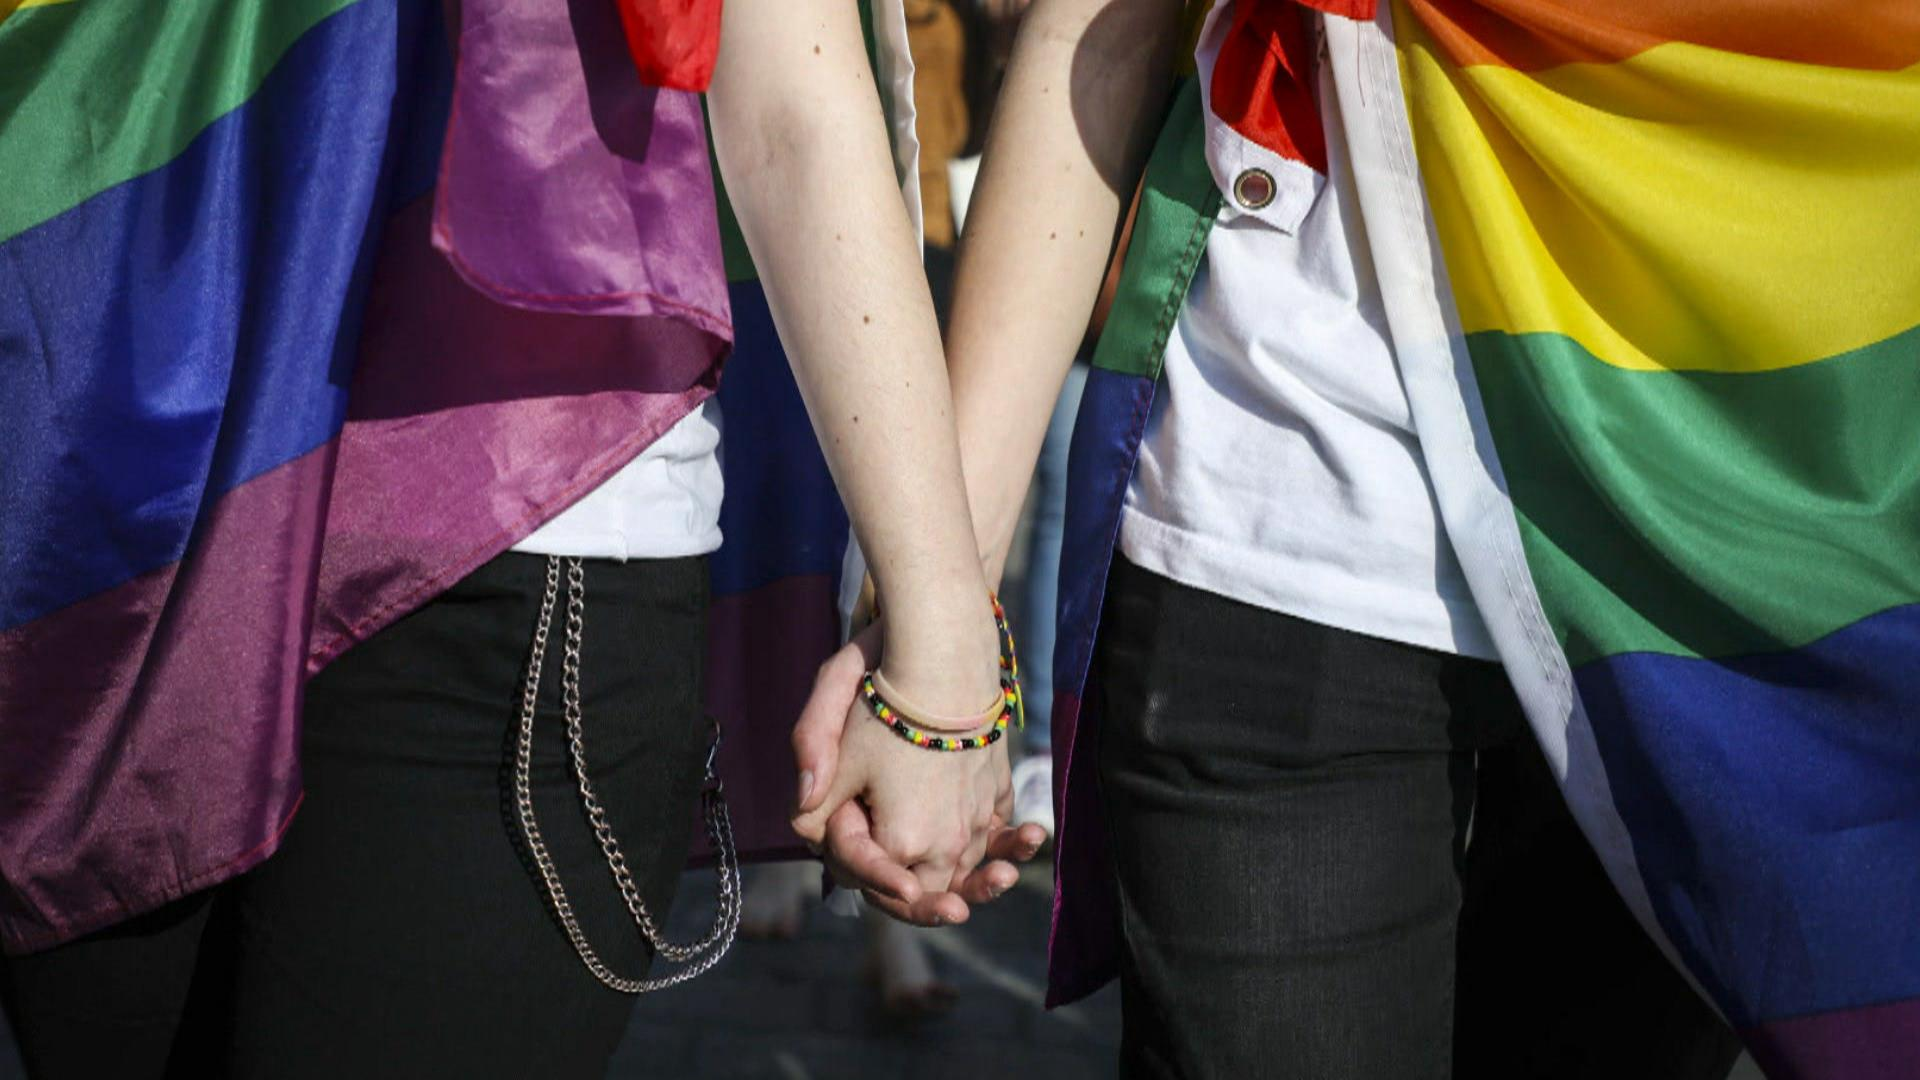 How the experience of coming out changed over generations